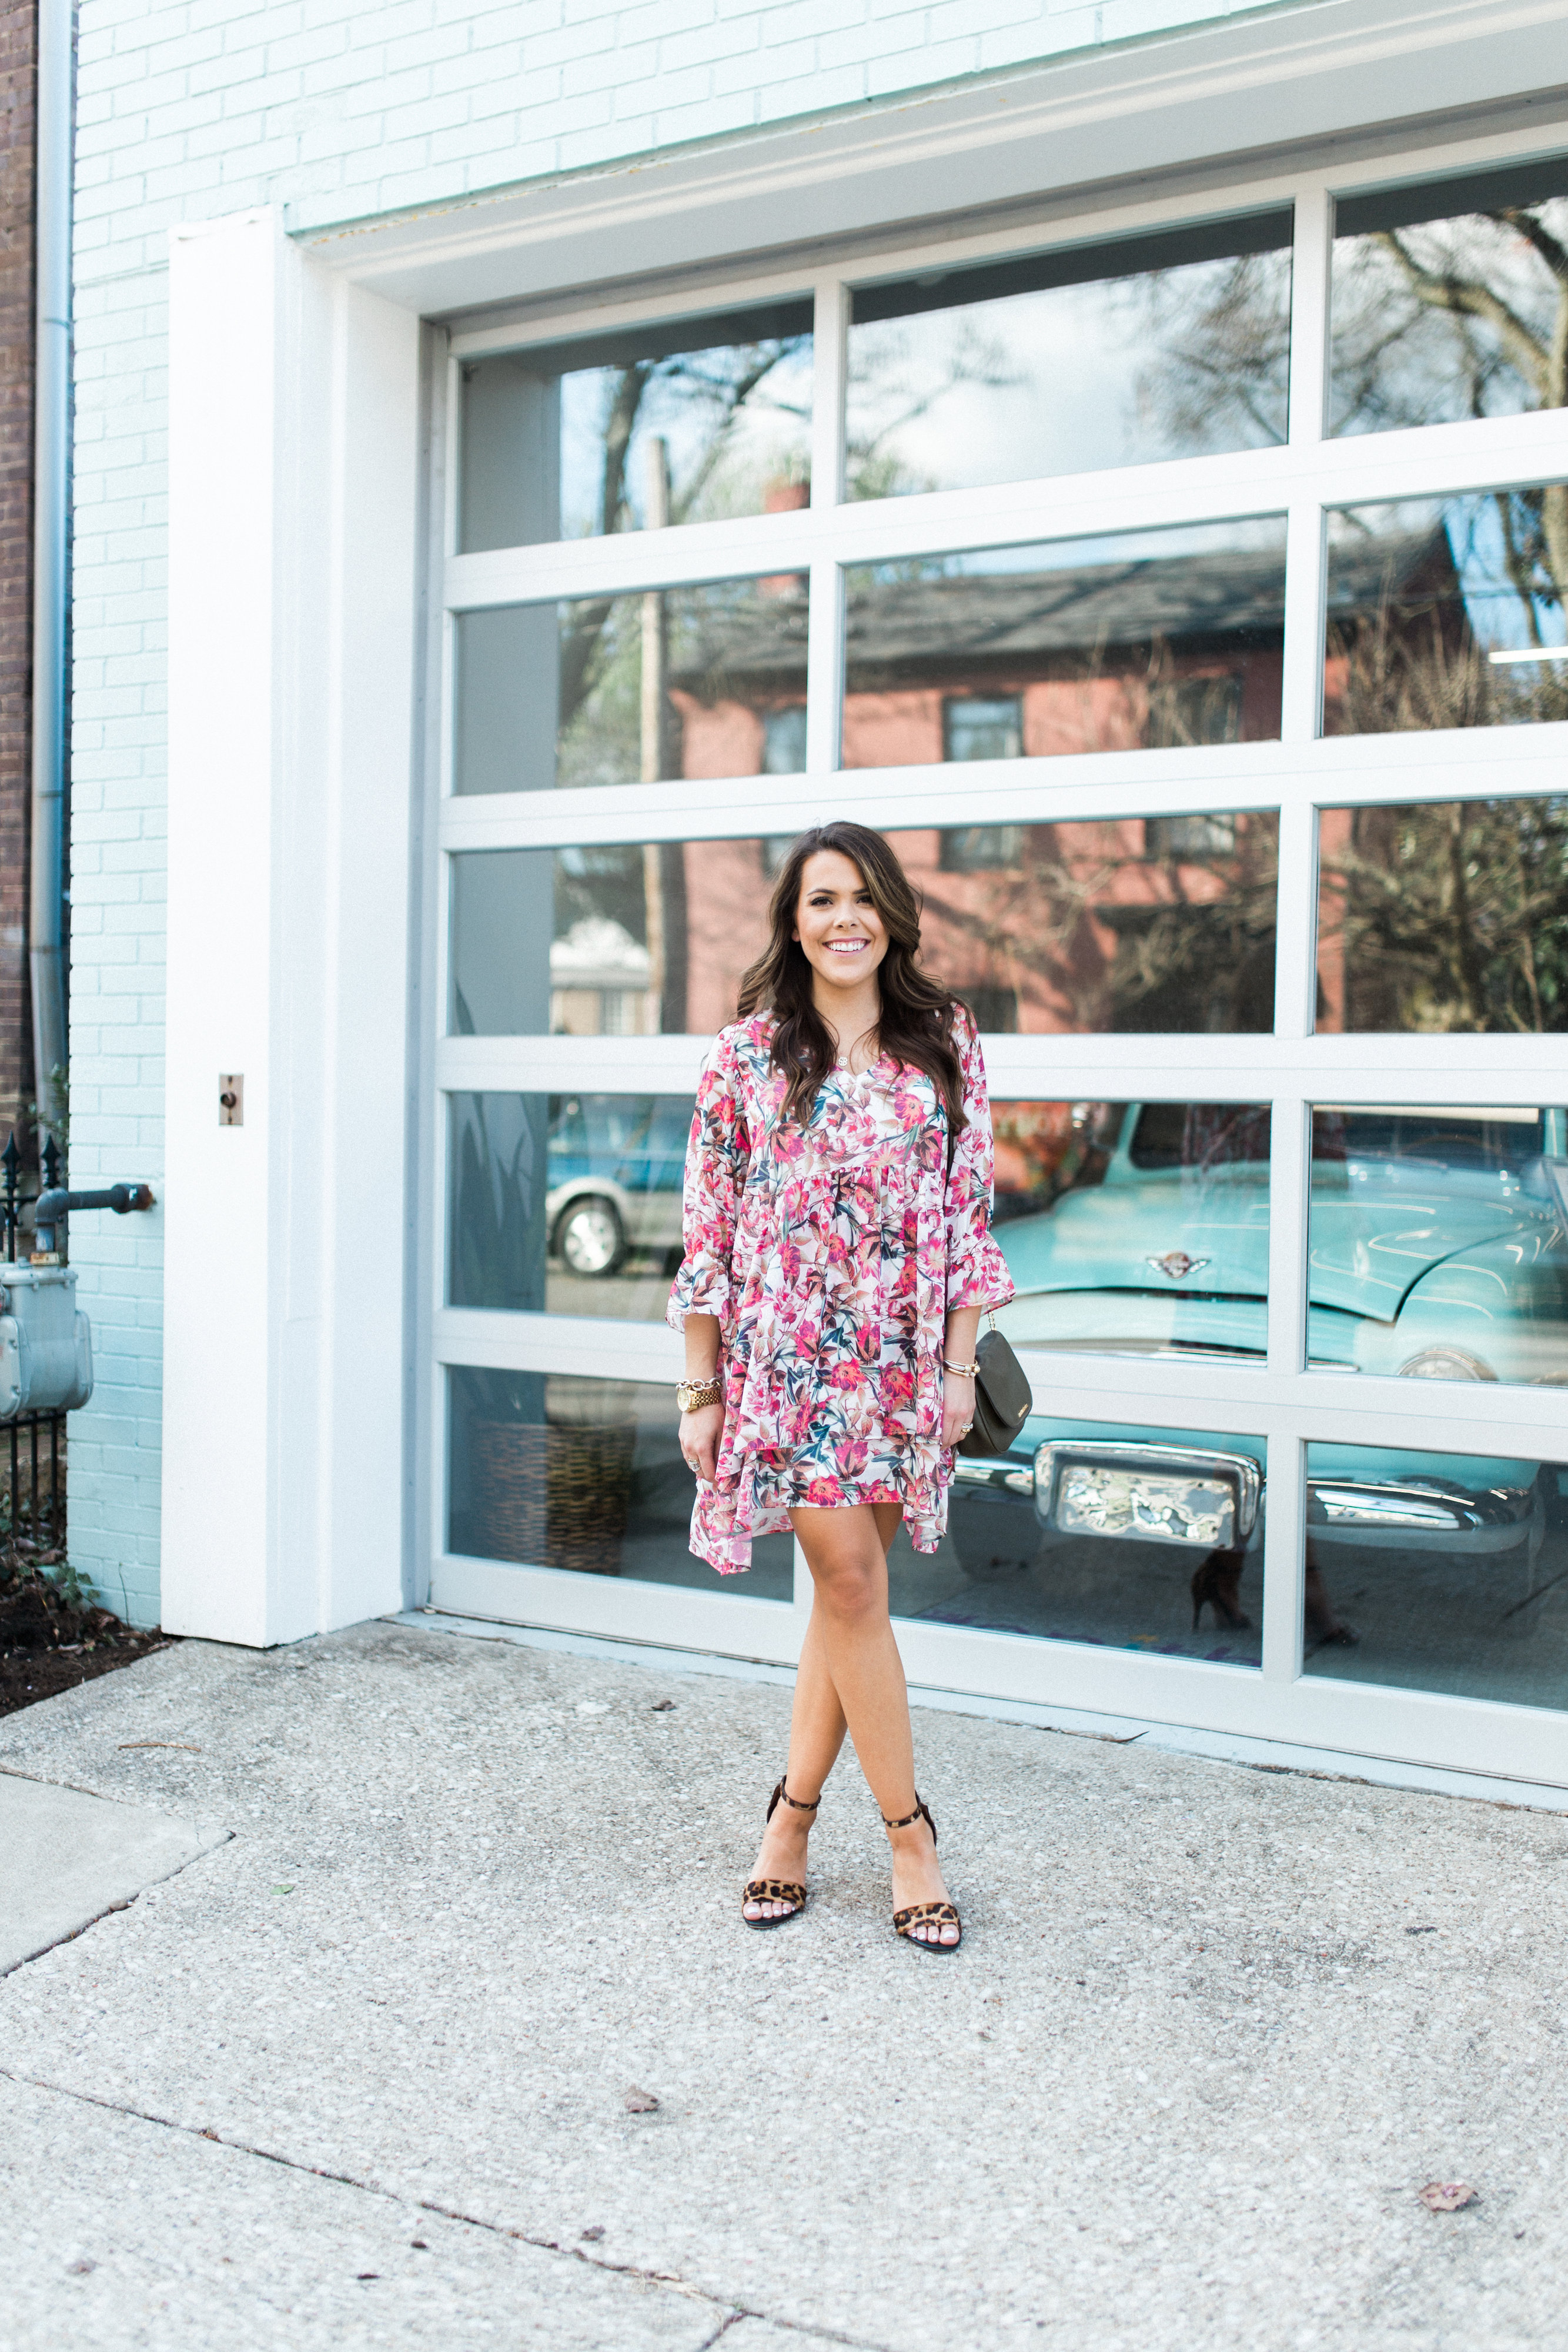 Spring Outfit Inspiration // Spring Outfit Ideas // Floral Dress, Leopard Sandals // Ft. Dillard's, Michael Kors, David Yurman